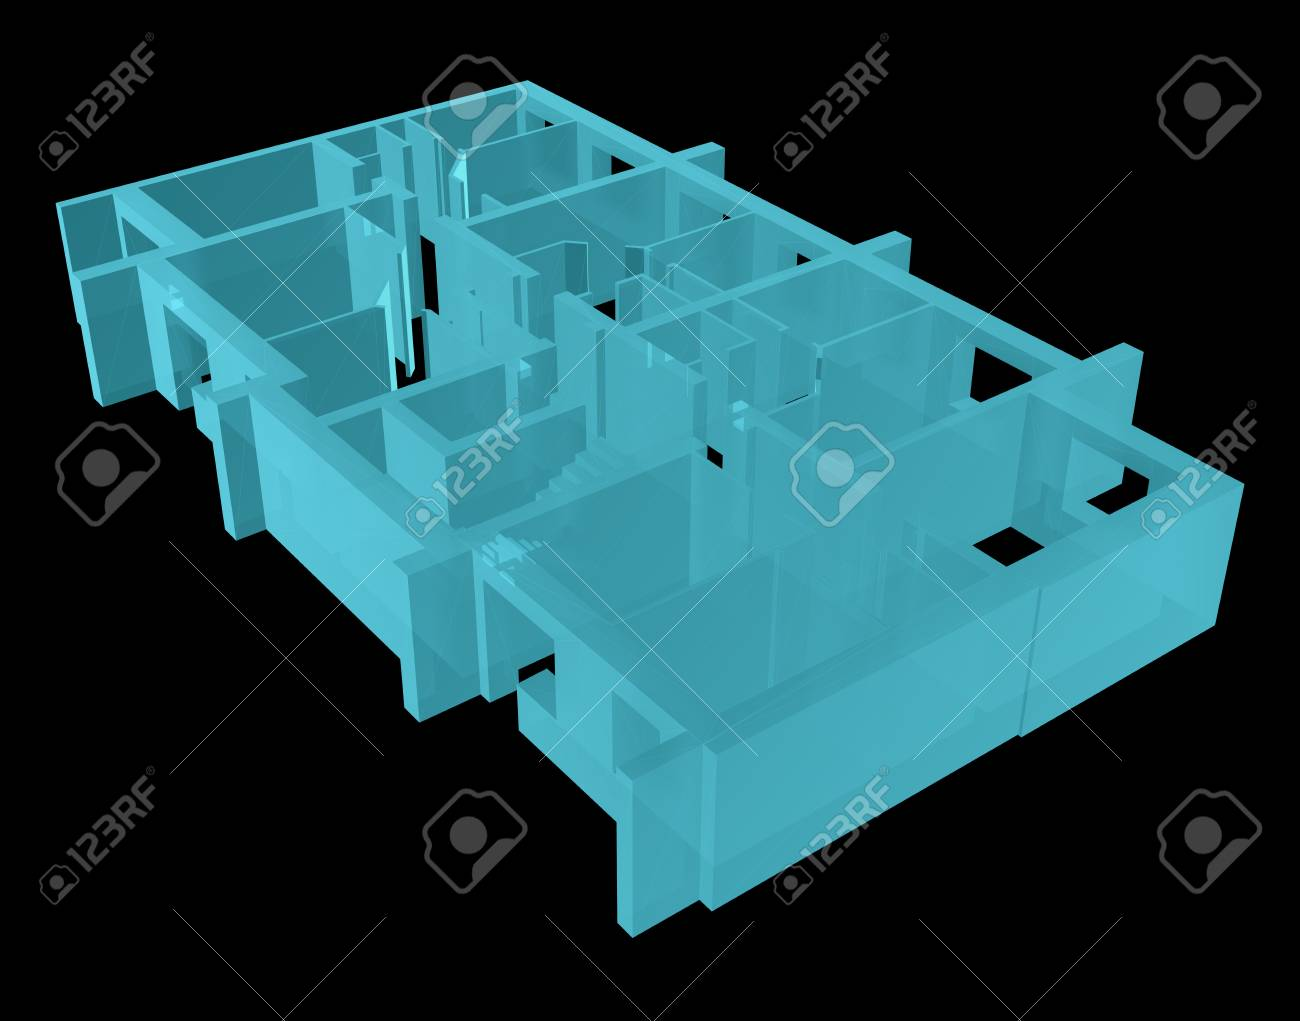 X Ray Model Floor Of Apartment Block Stock Photo Picture And Diagram